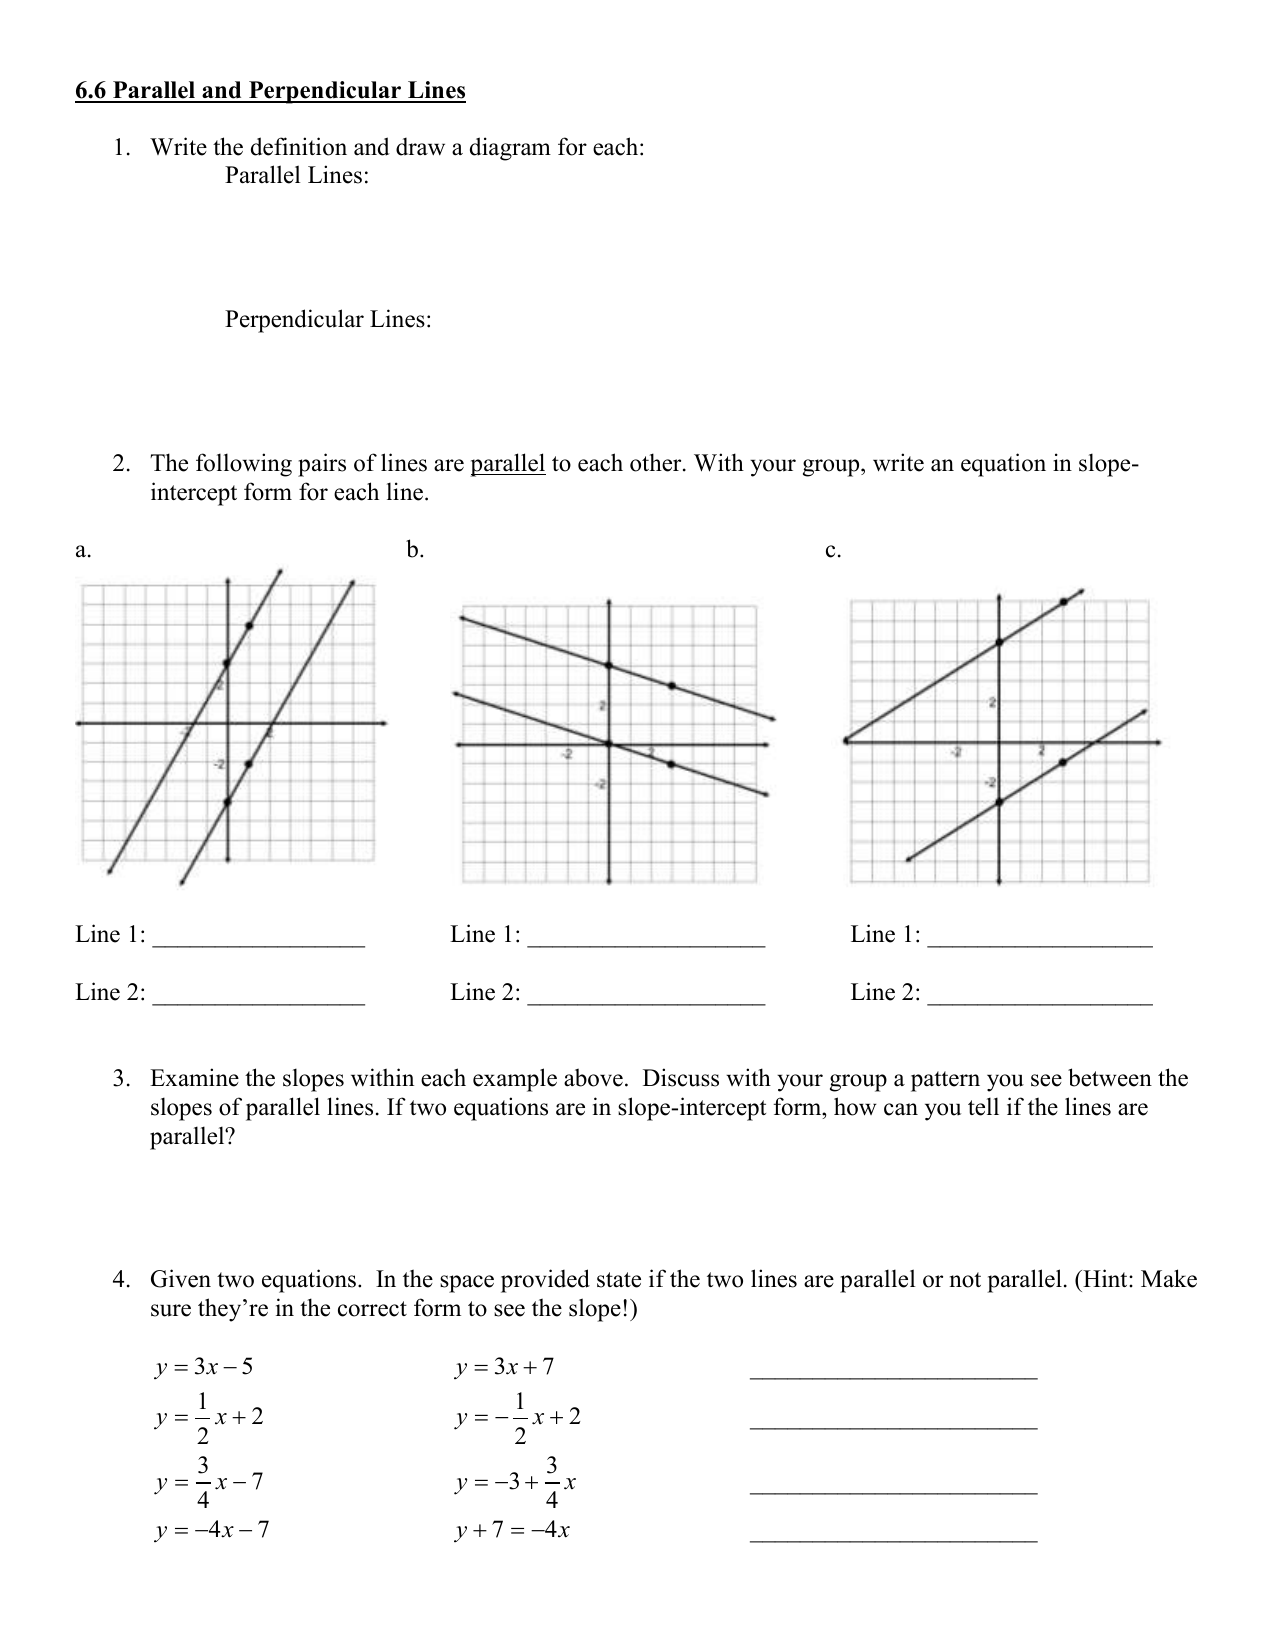 66 Parallel And Perpendicular Lines Parallel Lines